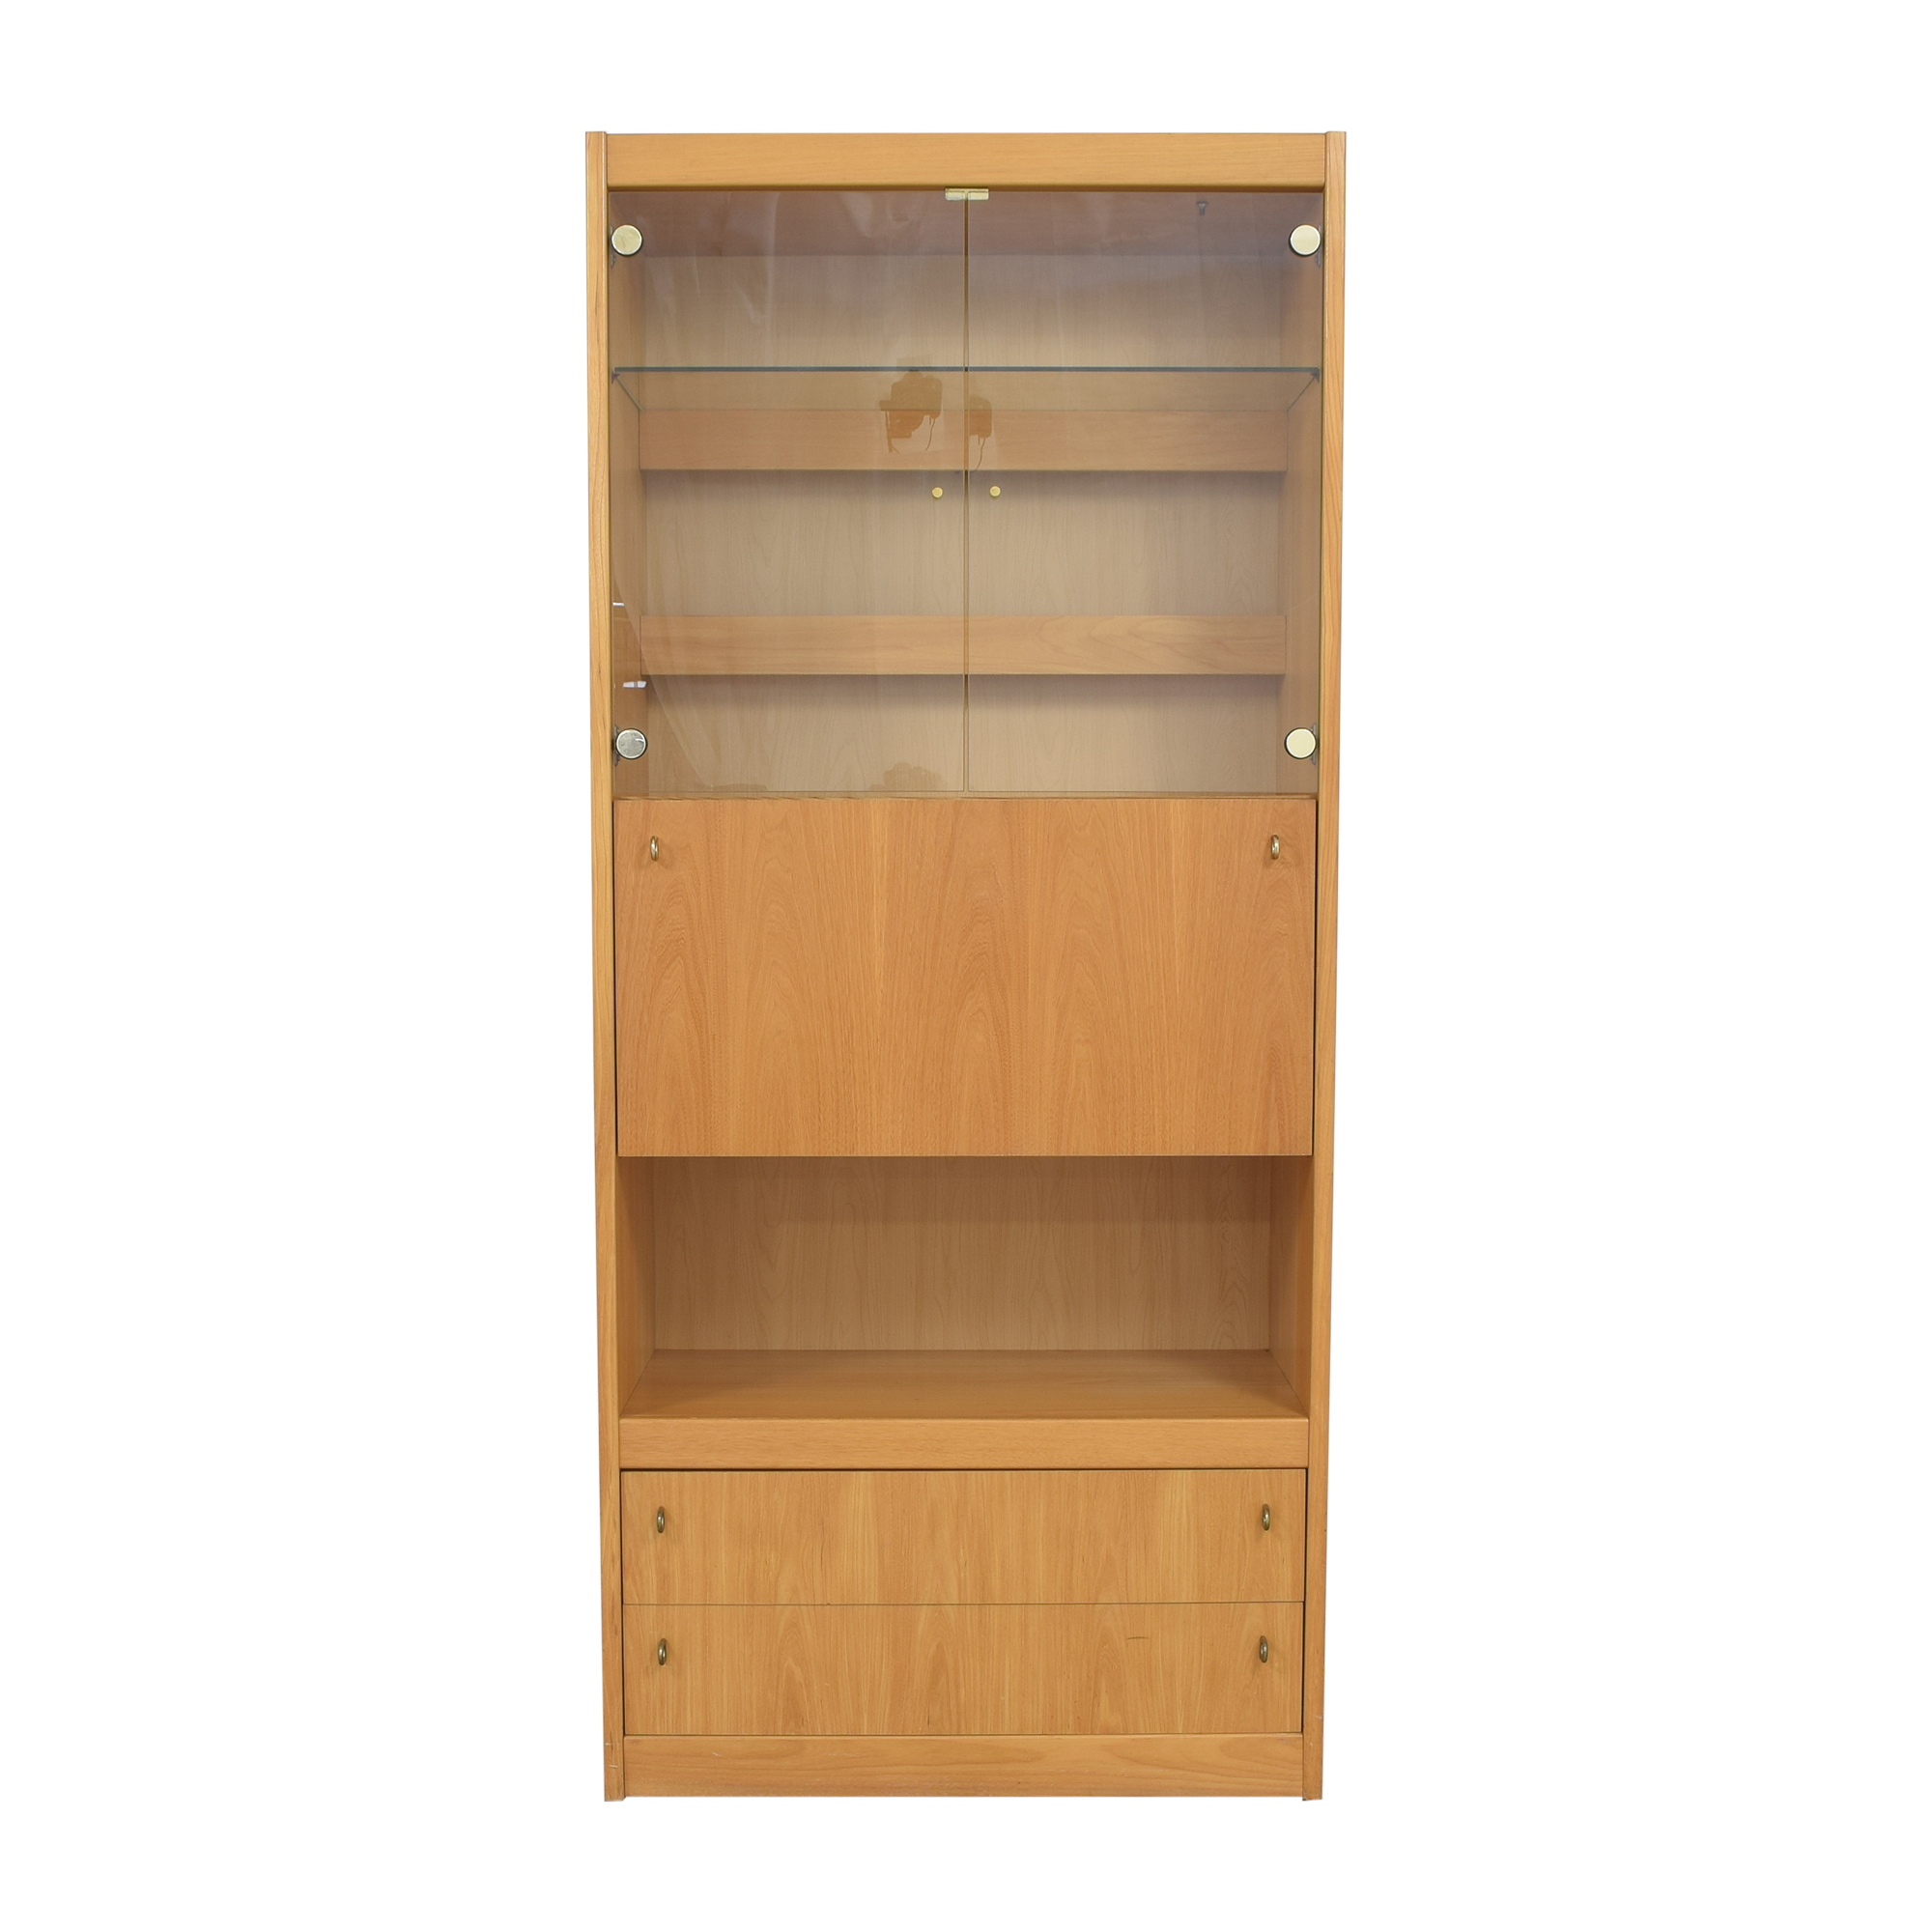 Macy's Macy's Large Lighted Cabinet price